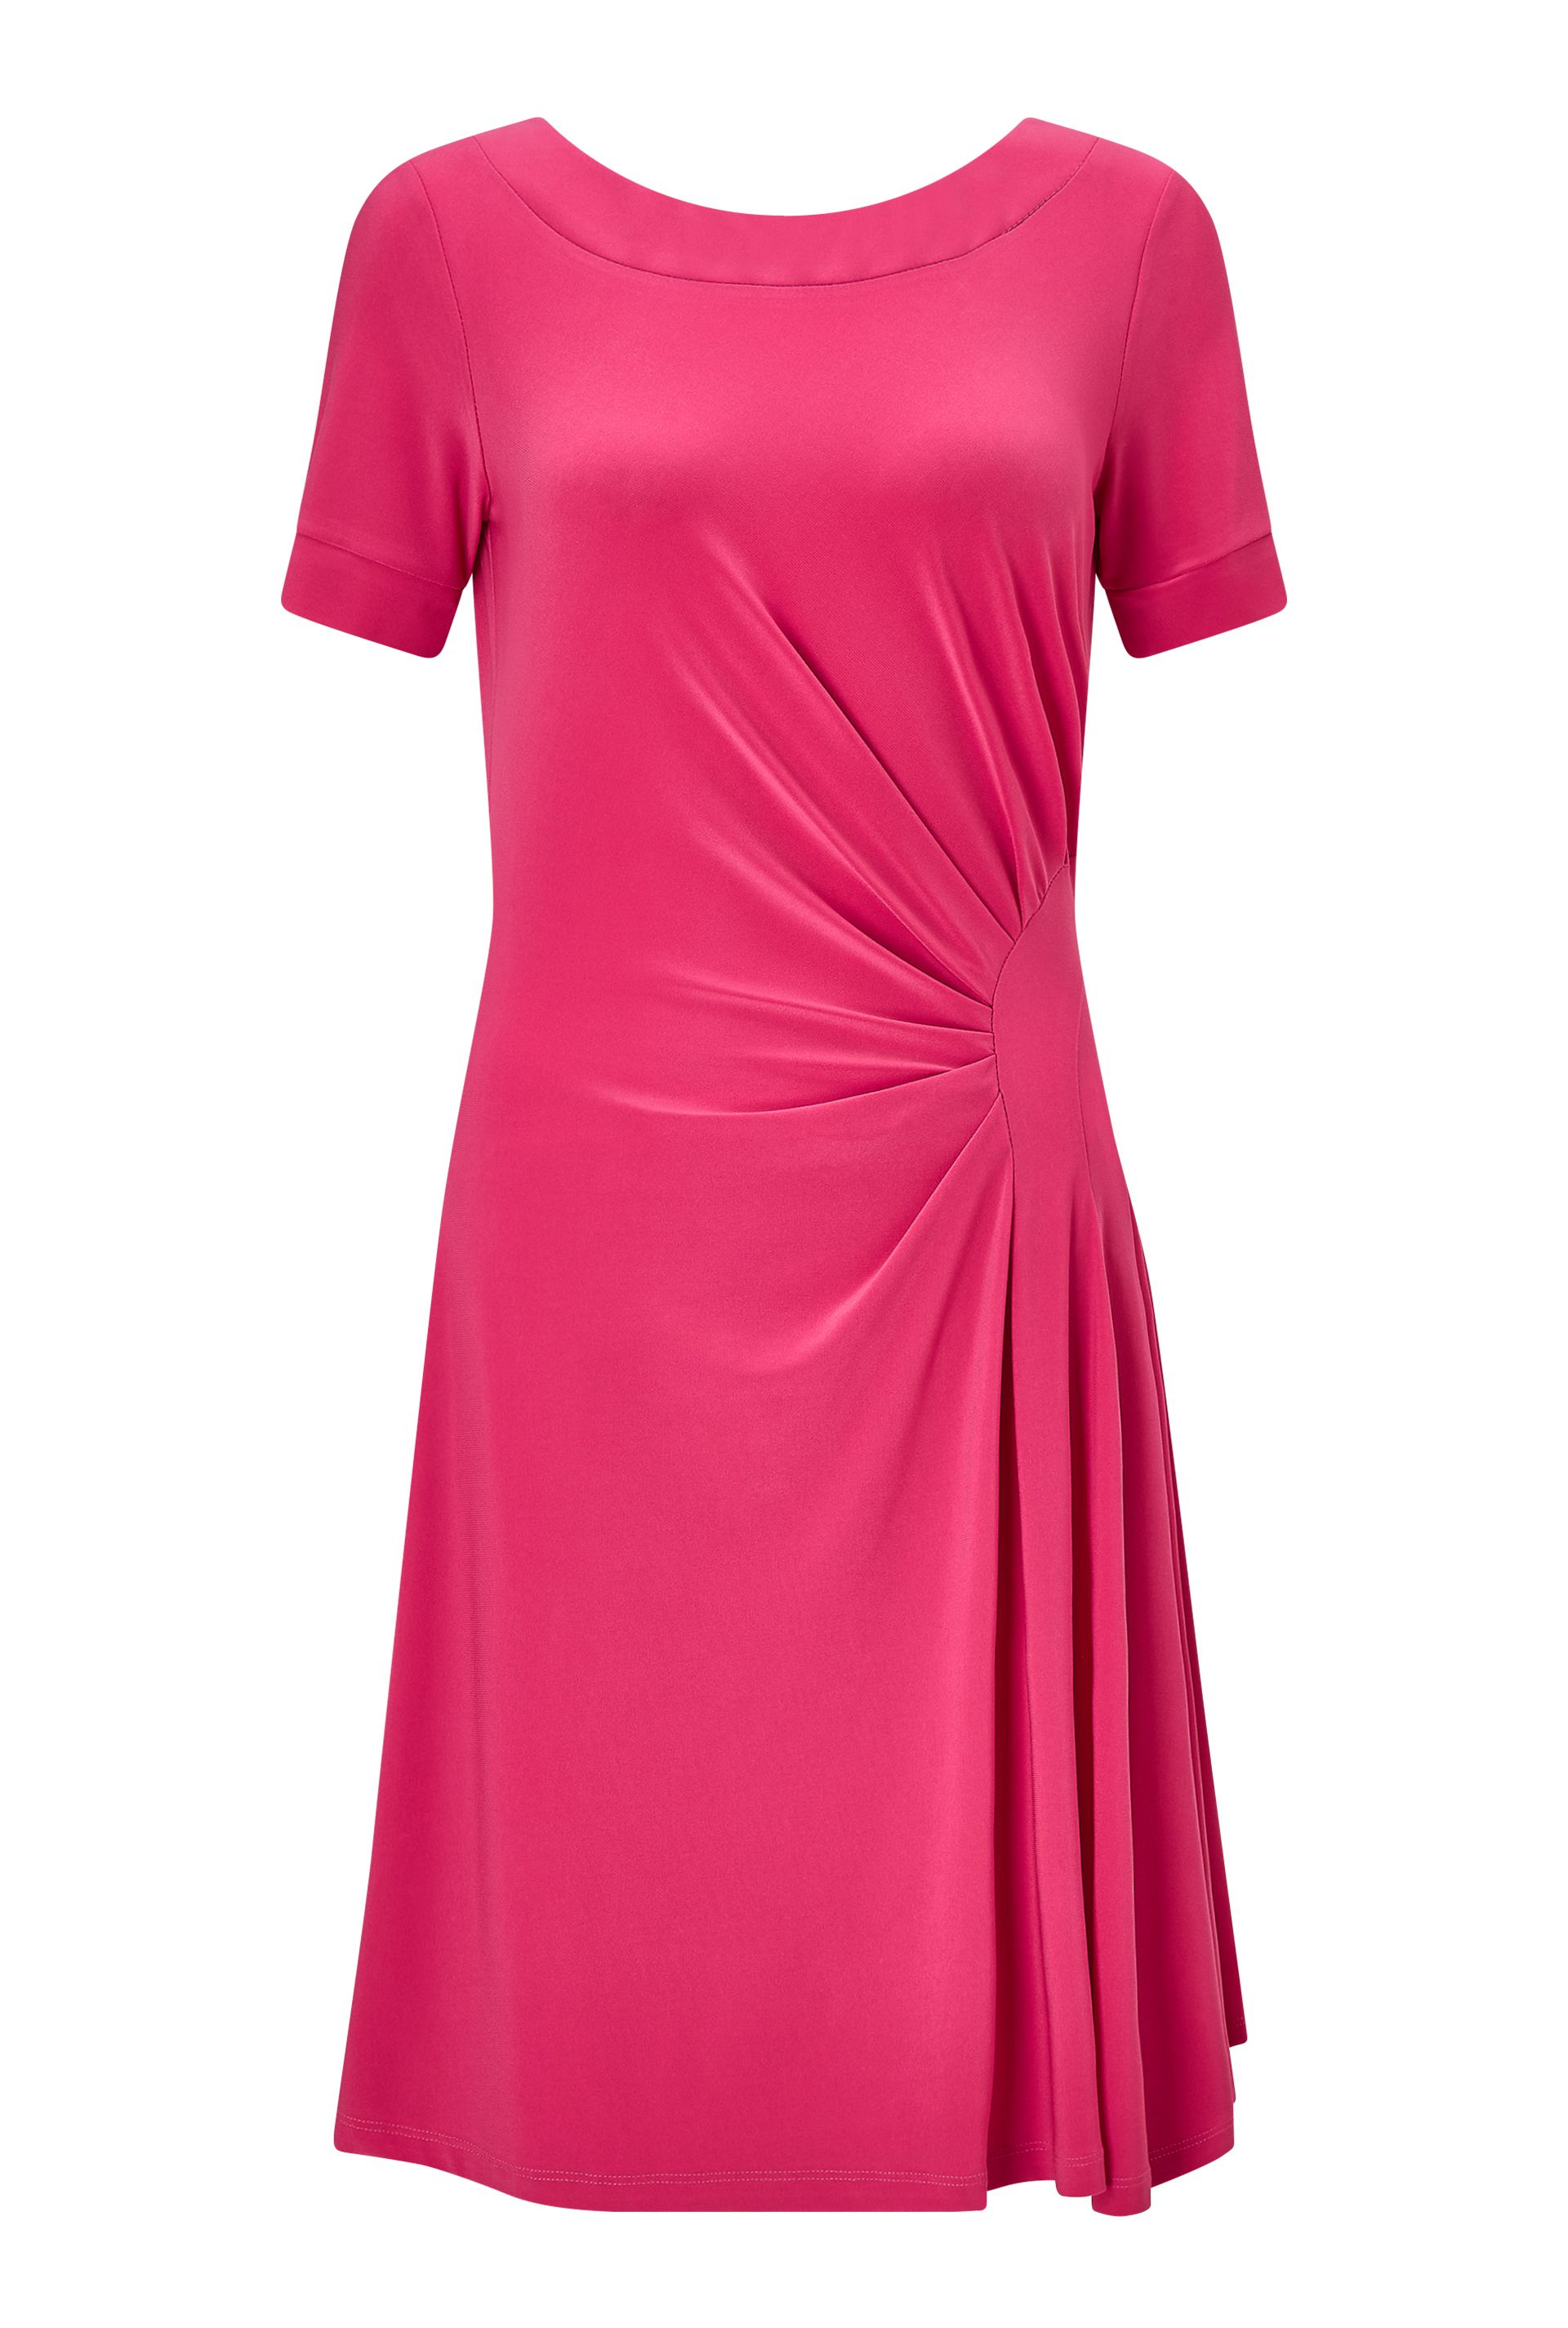 James Lakeland Back V Neck Dress, Pink